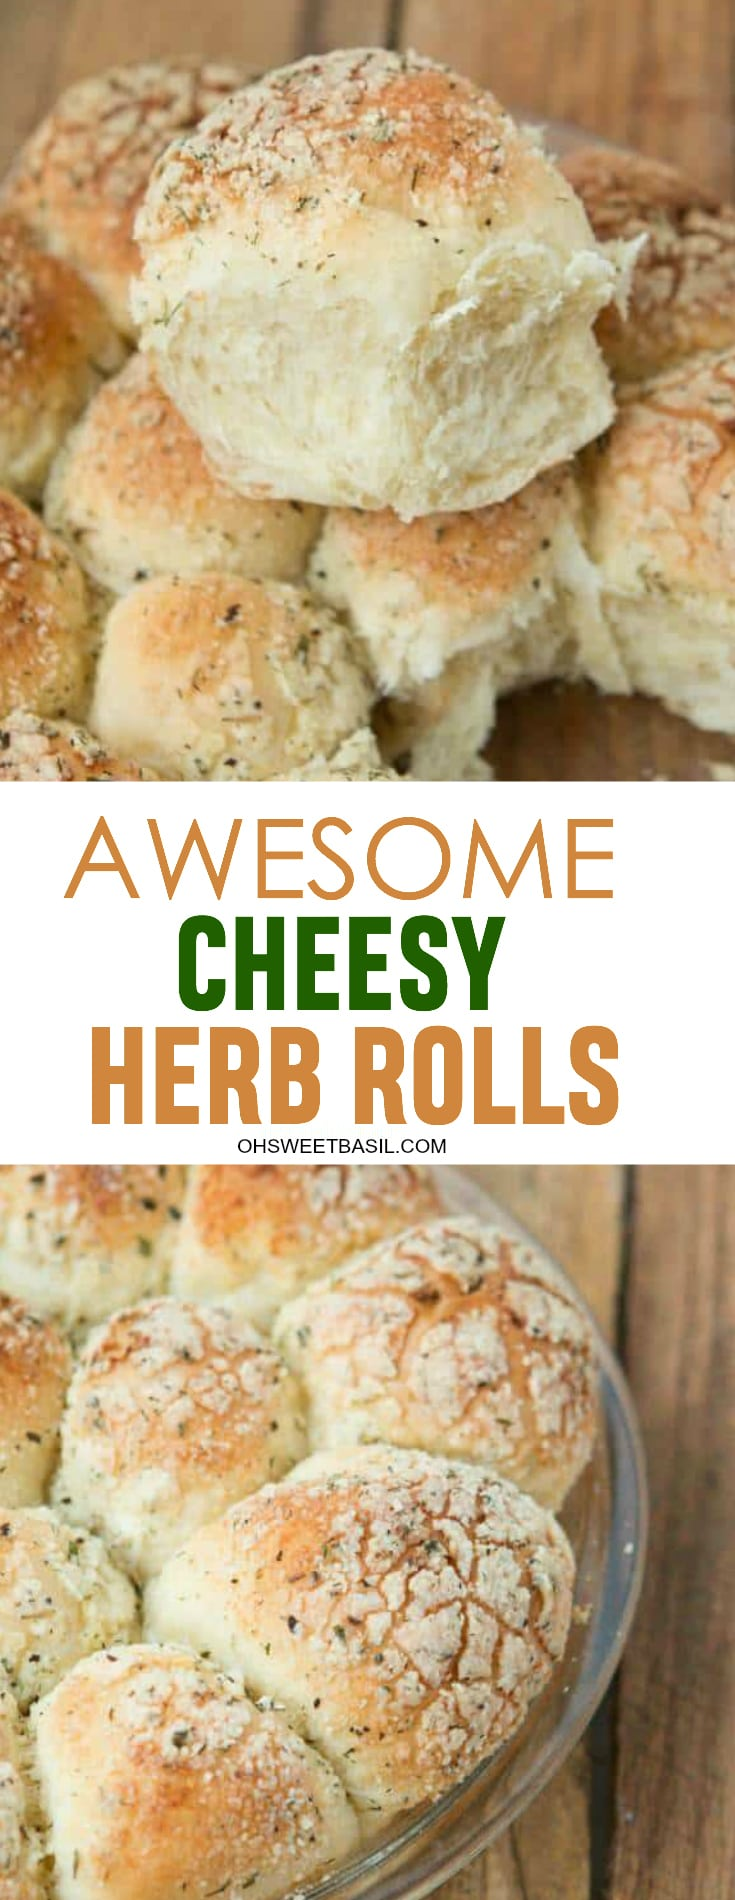 A plate of Awesome Cheese Herb Rolls